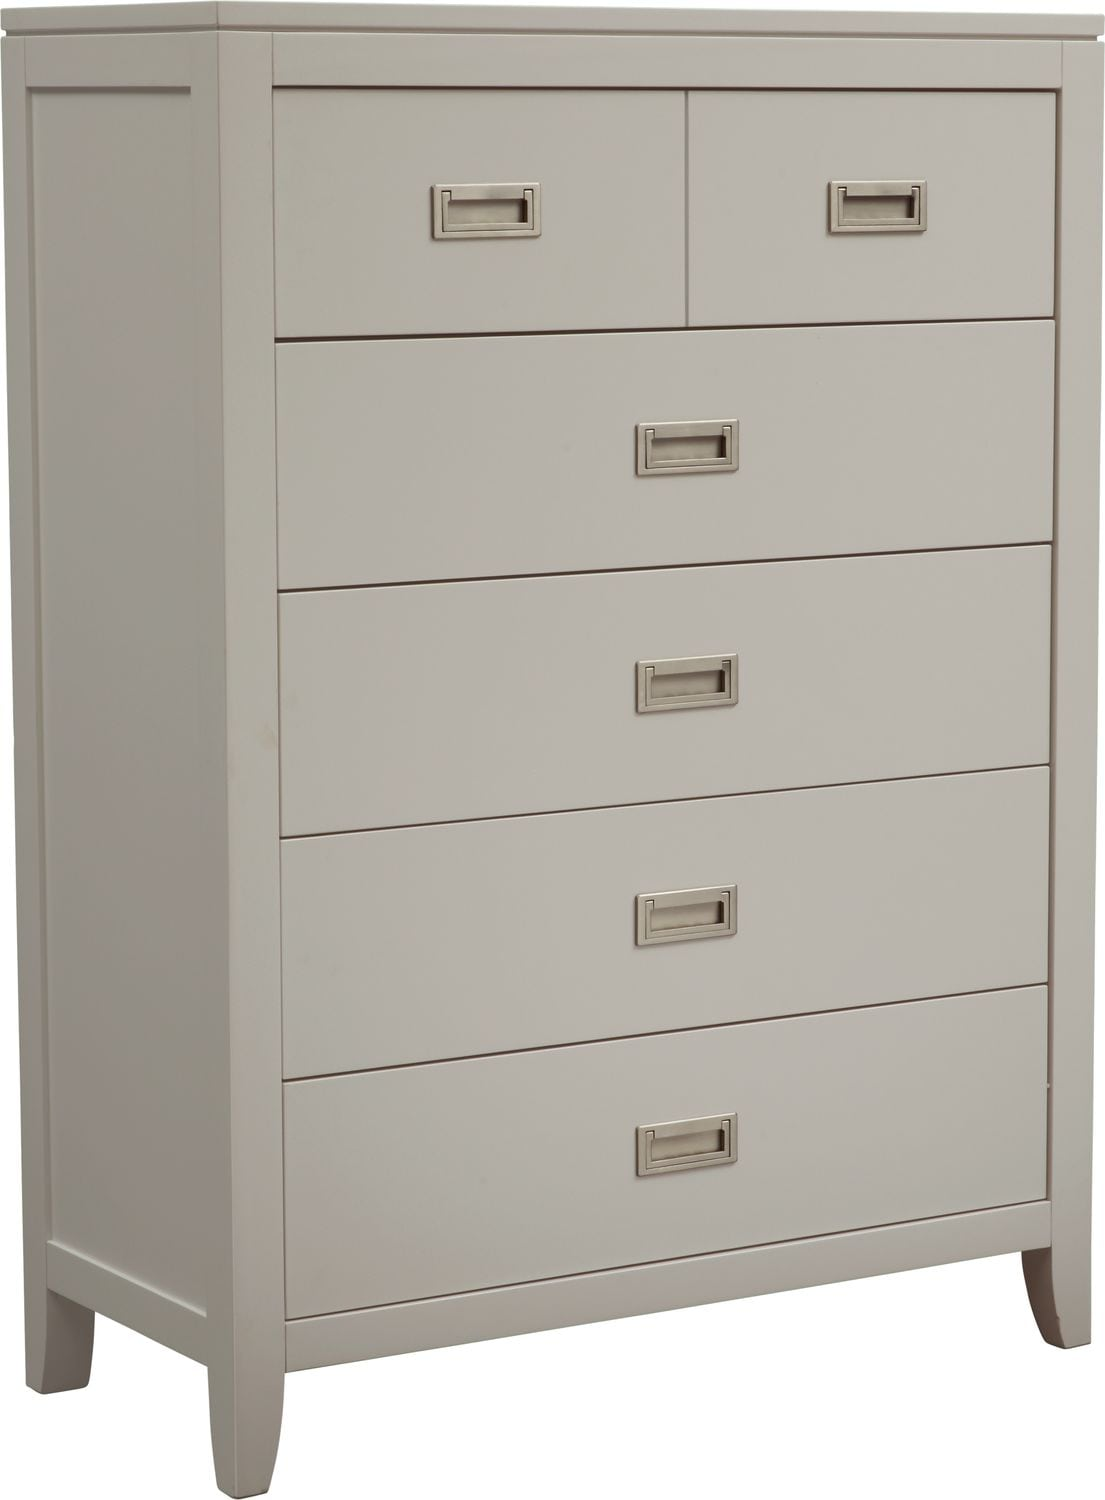 Bedroom Furniture - Emerson Chest